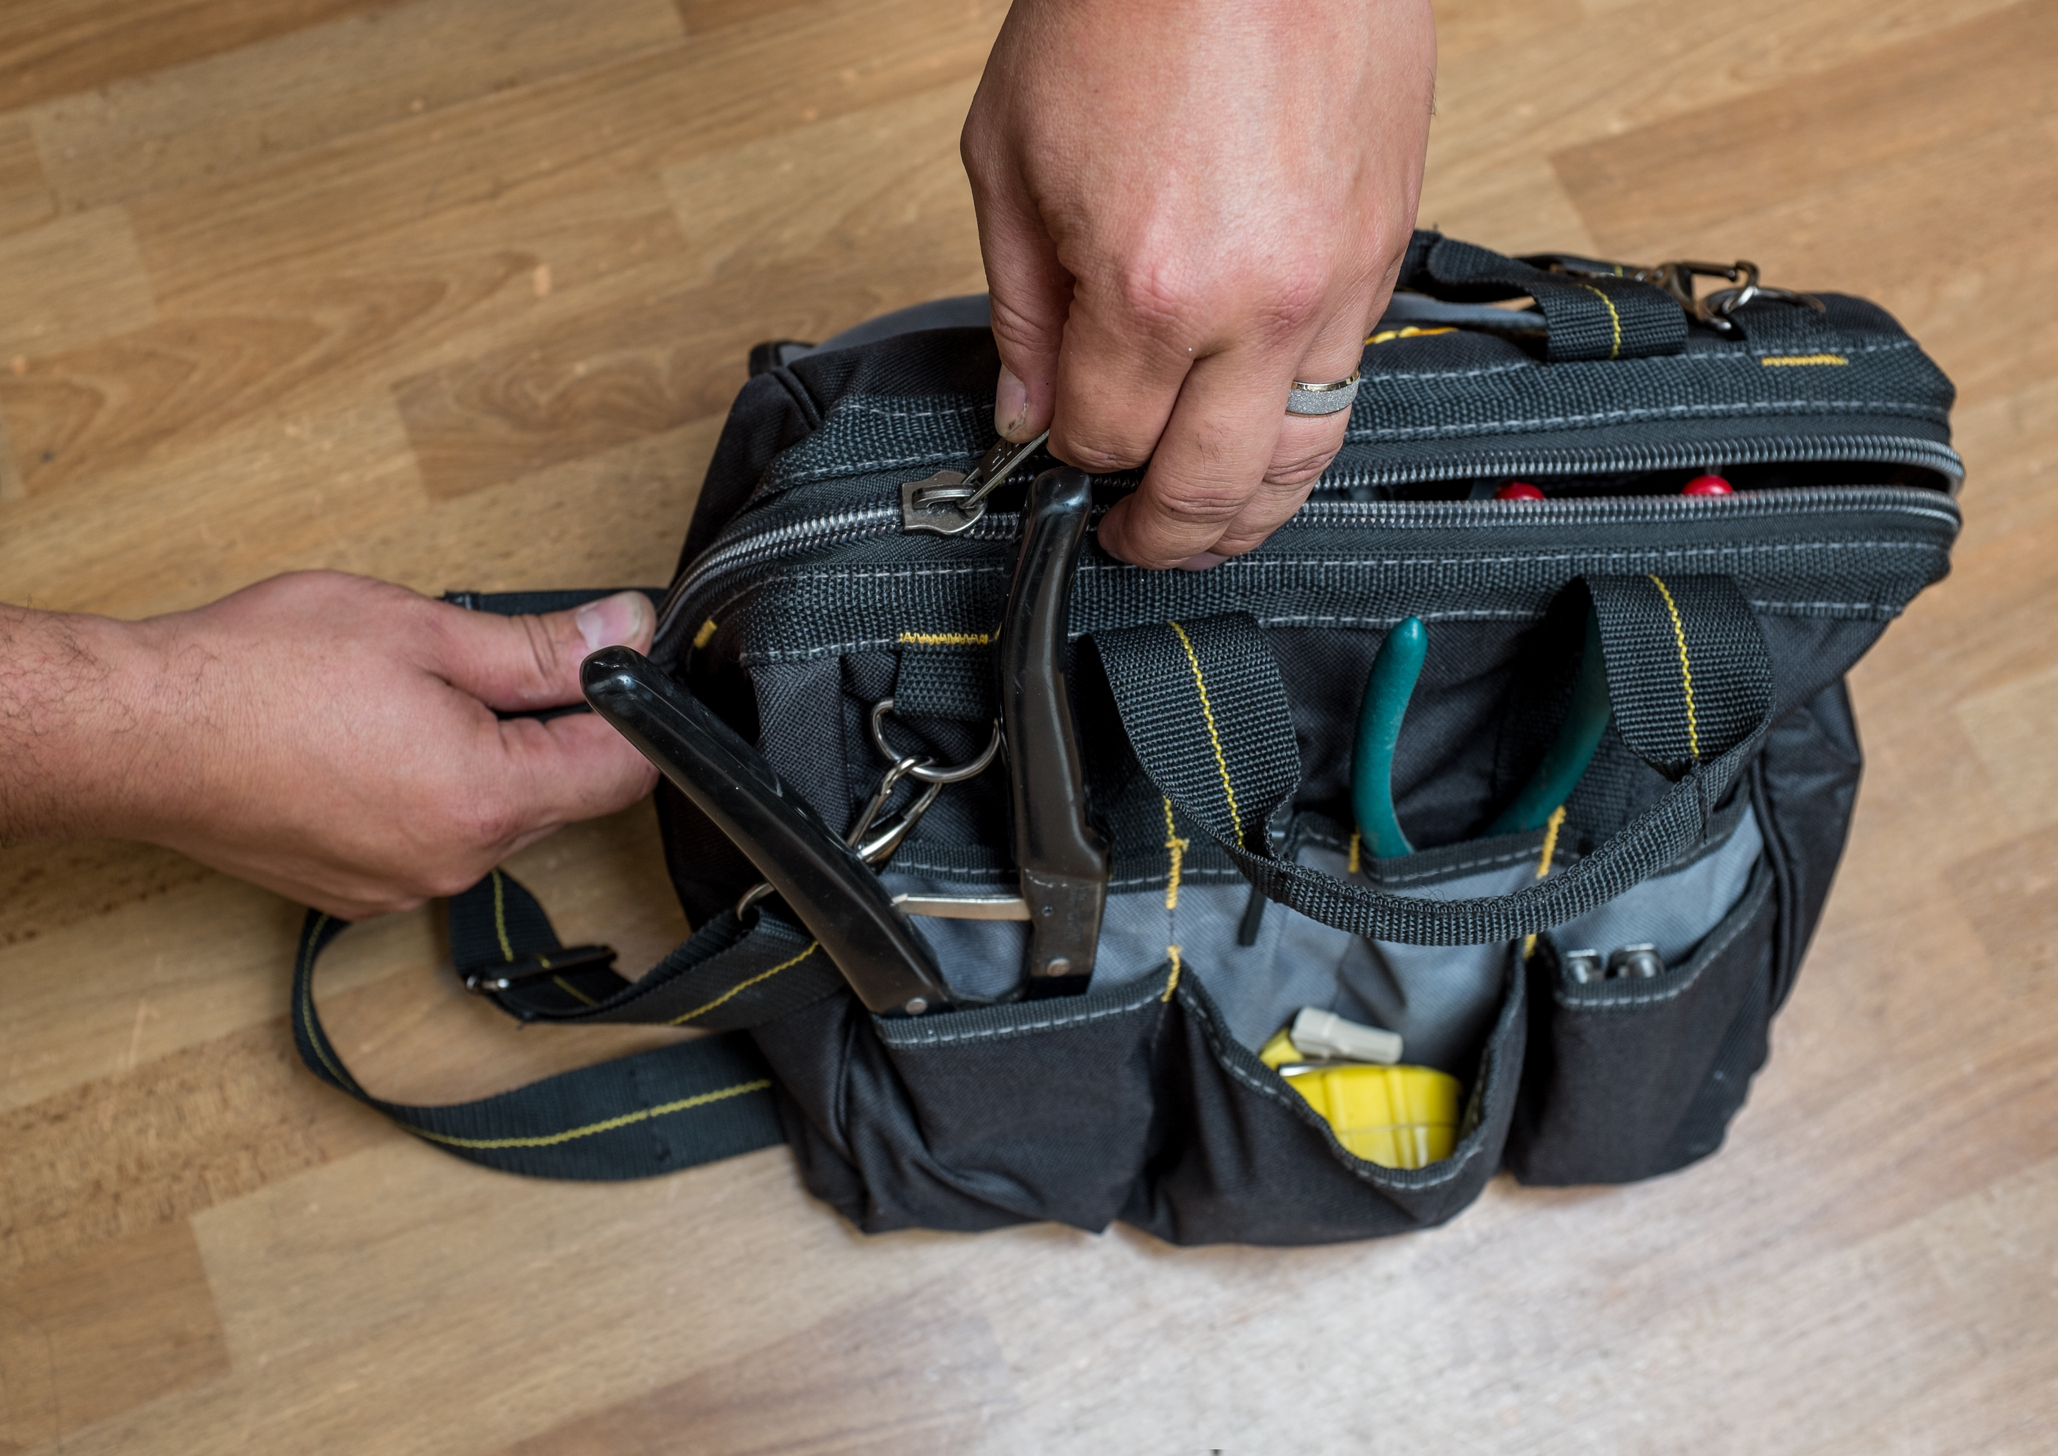 What's In Your Toolbox? The EverRest Group Suggests…